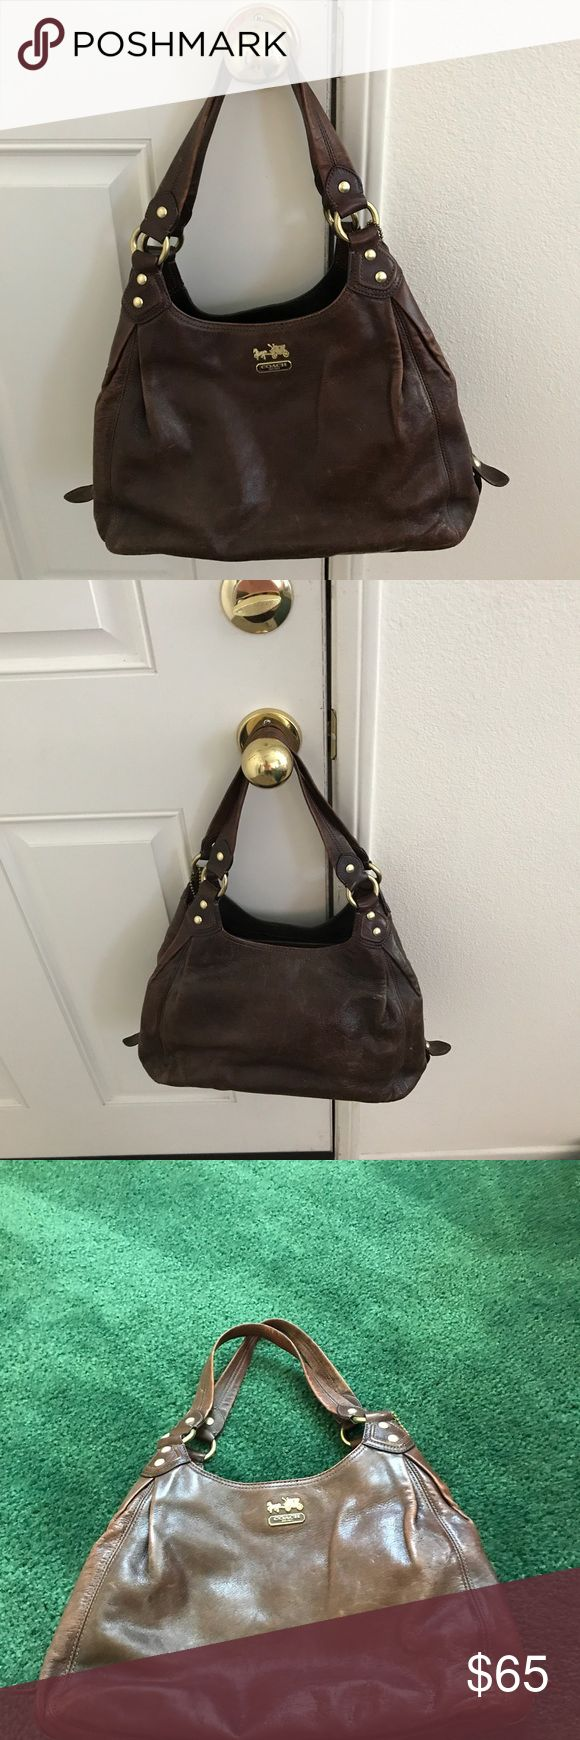 """COACH LEATHER BAG COACH LEATHER BAG GOOD CONDITION SHOWS SOME WEAR NO RIPS, TEARS OR STAINS. NO PET OR SMOKE ODORS. STRAPS ARE 15"""" Coach Bags Satchels"""